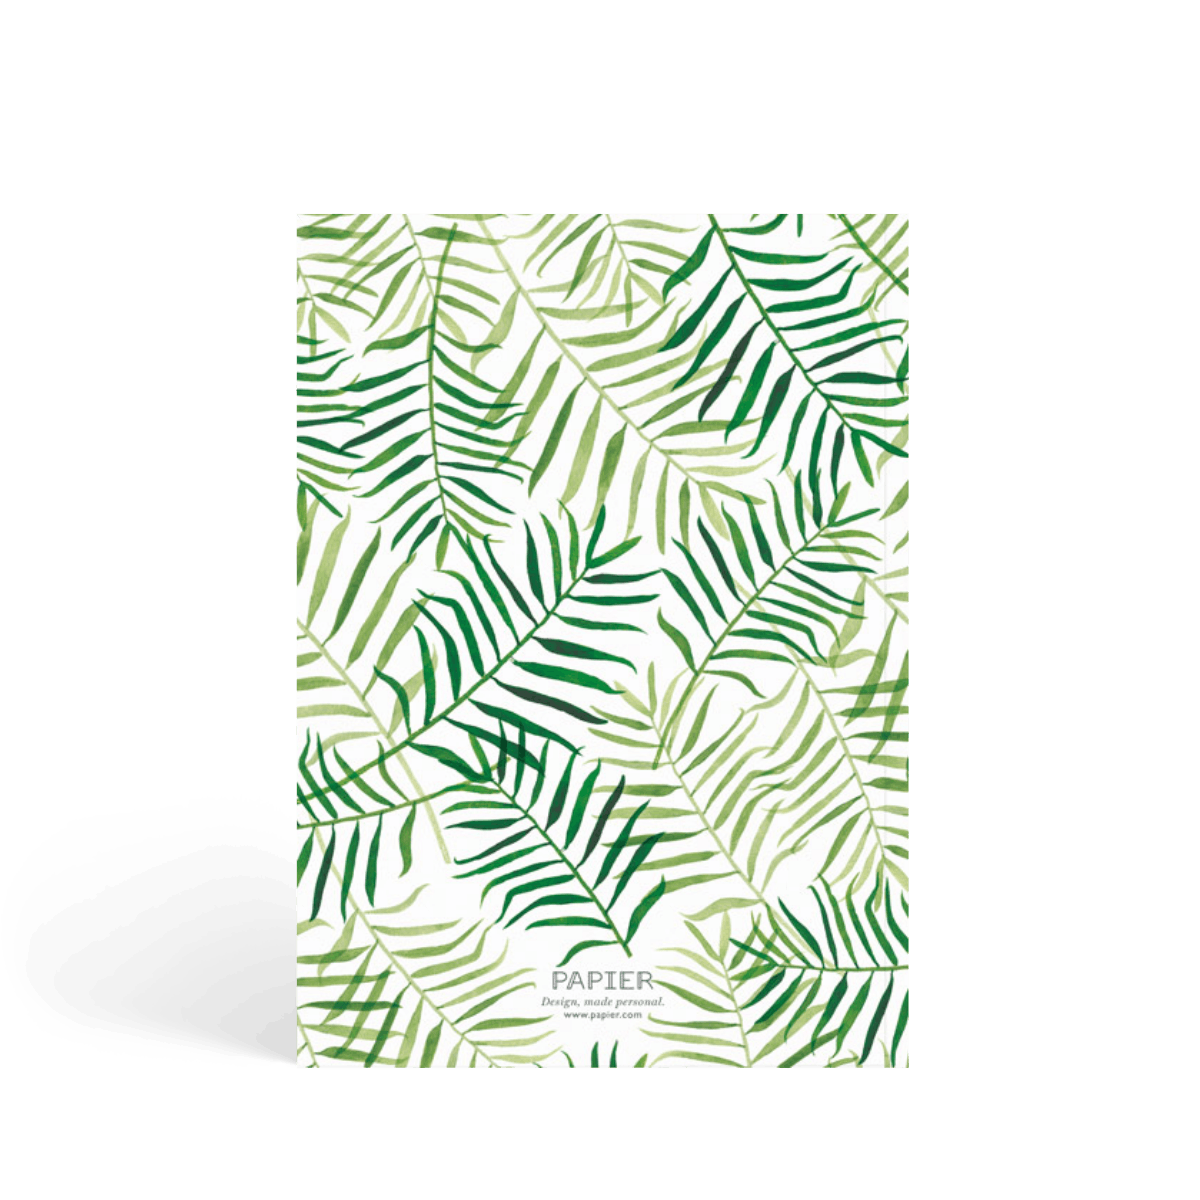 Https%3a%2f%2fwww.papier.com%2fproduct image%2f55210%2f5%2fpalm fronds 13263 back 1542299241.png?ixlib=rb 1.1